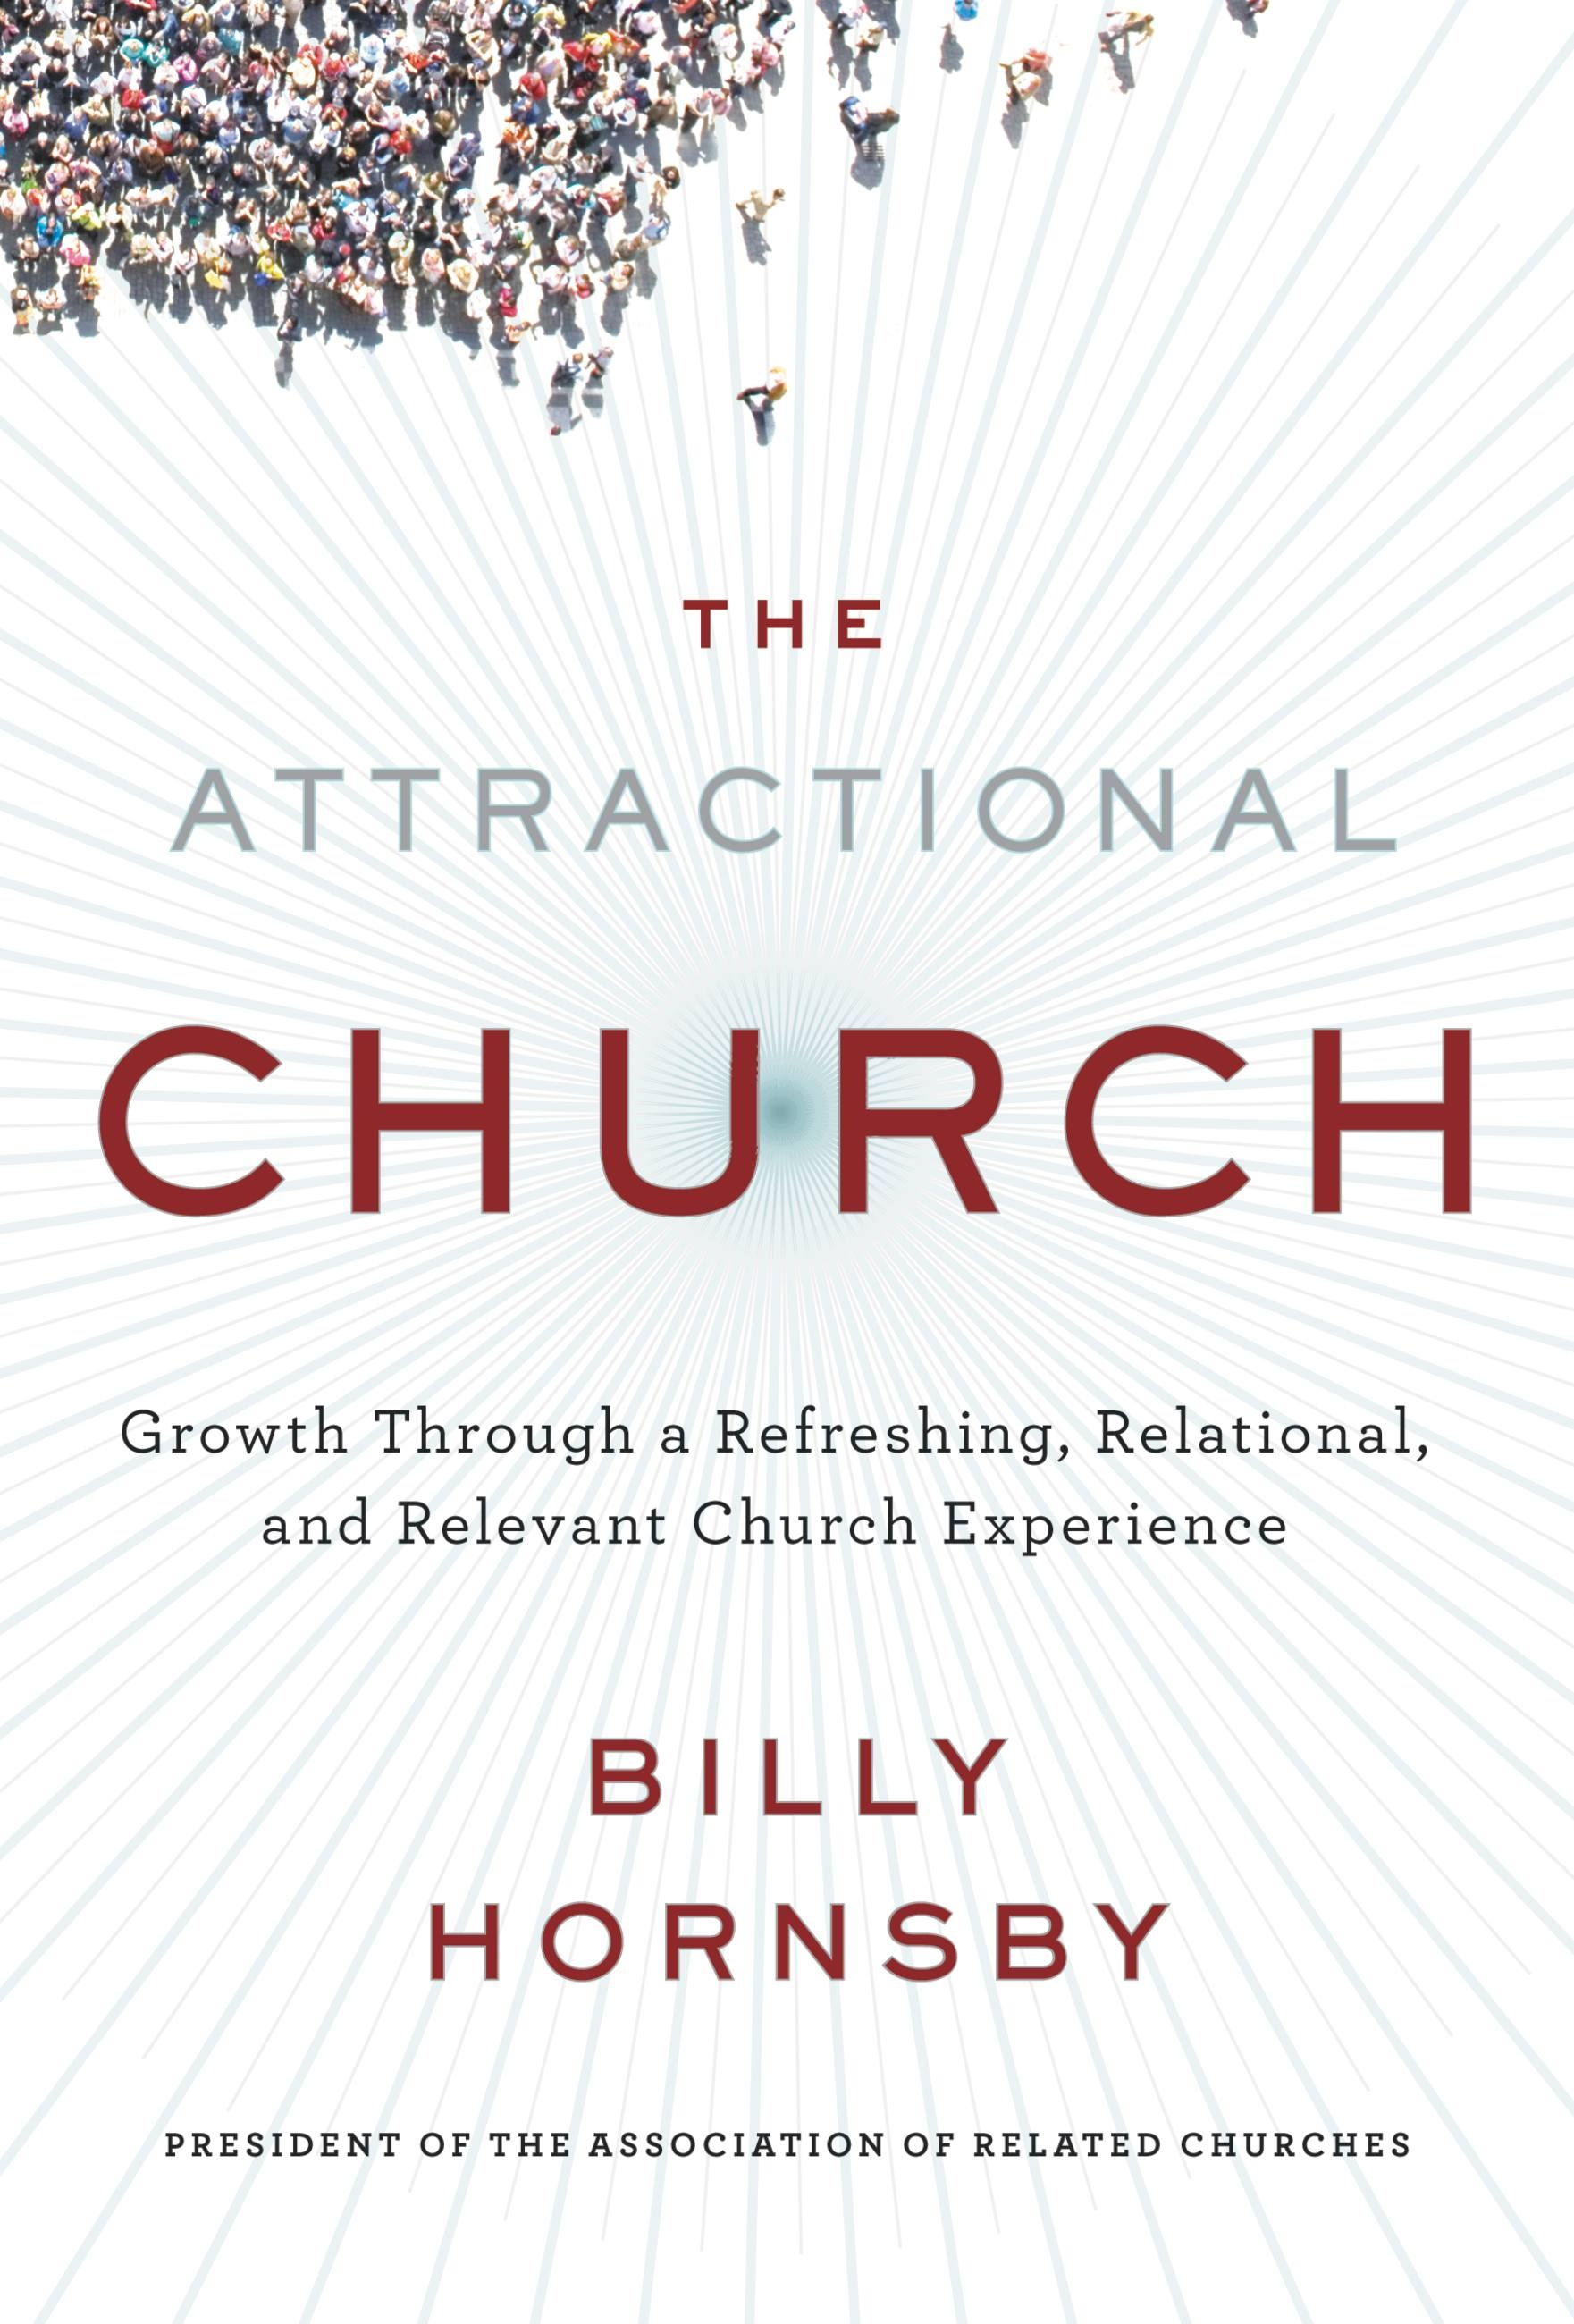 The Attractional Church